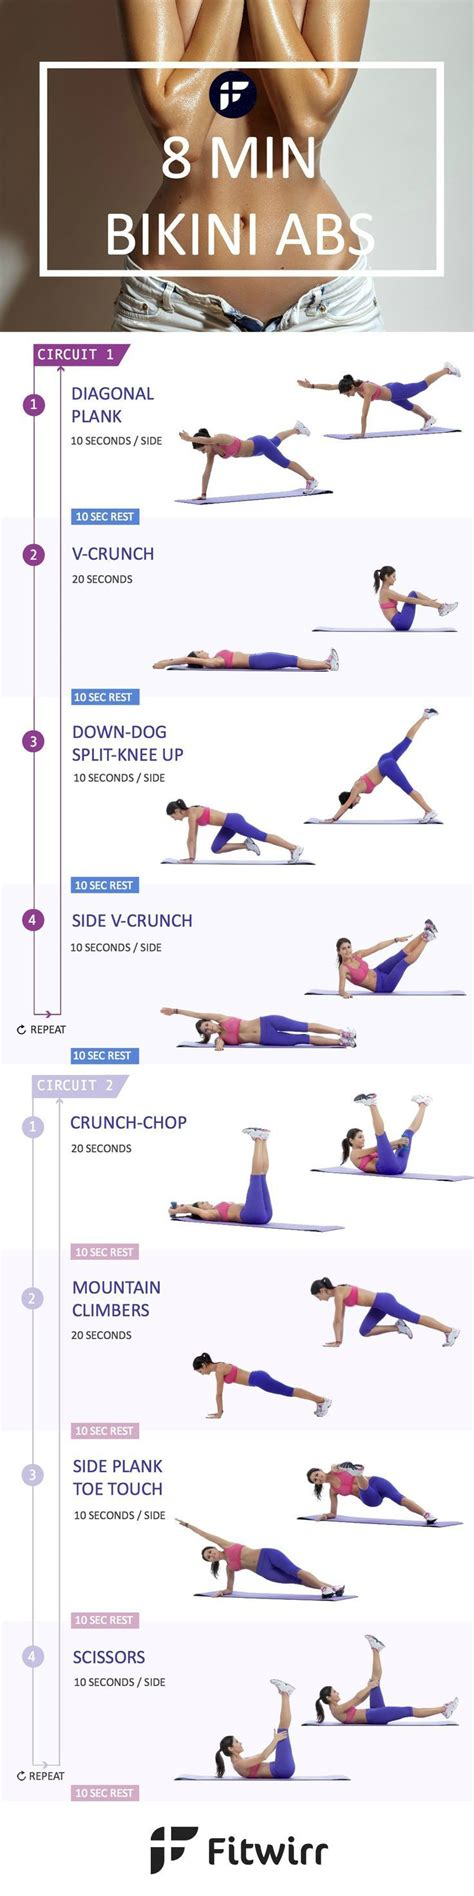 9 amazing flat belly workouts to sculpt your abs